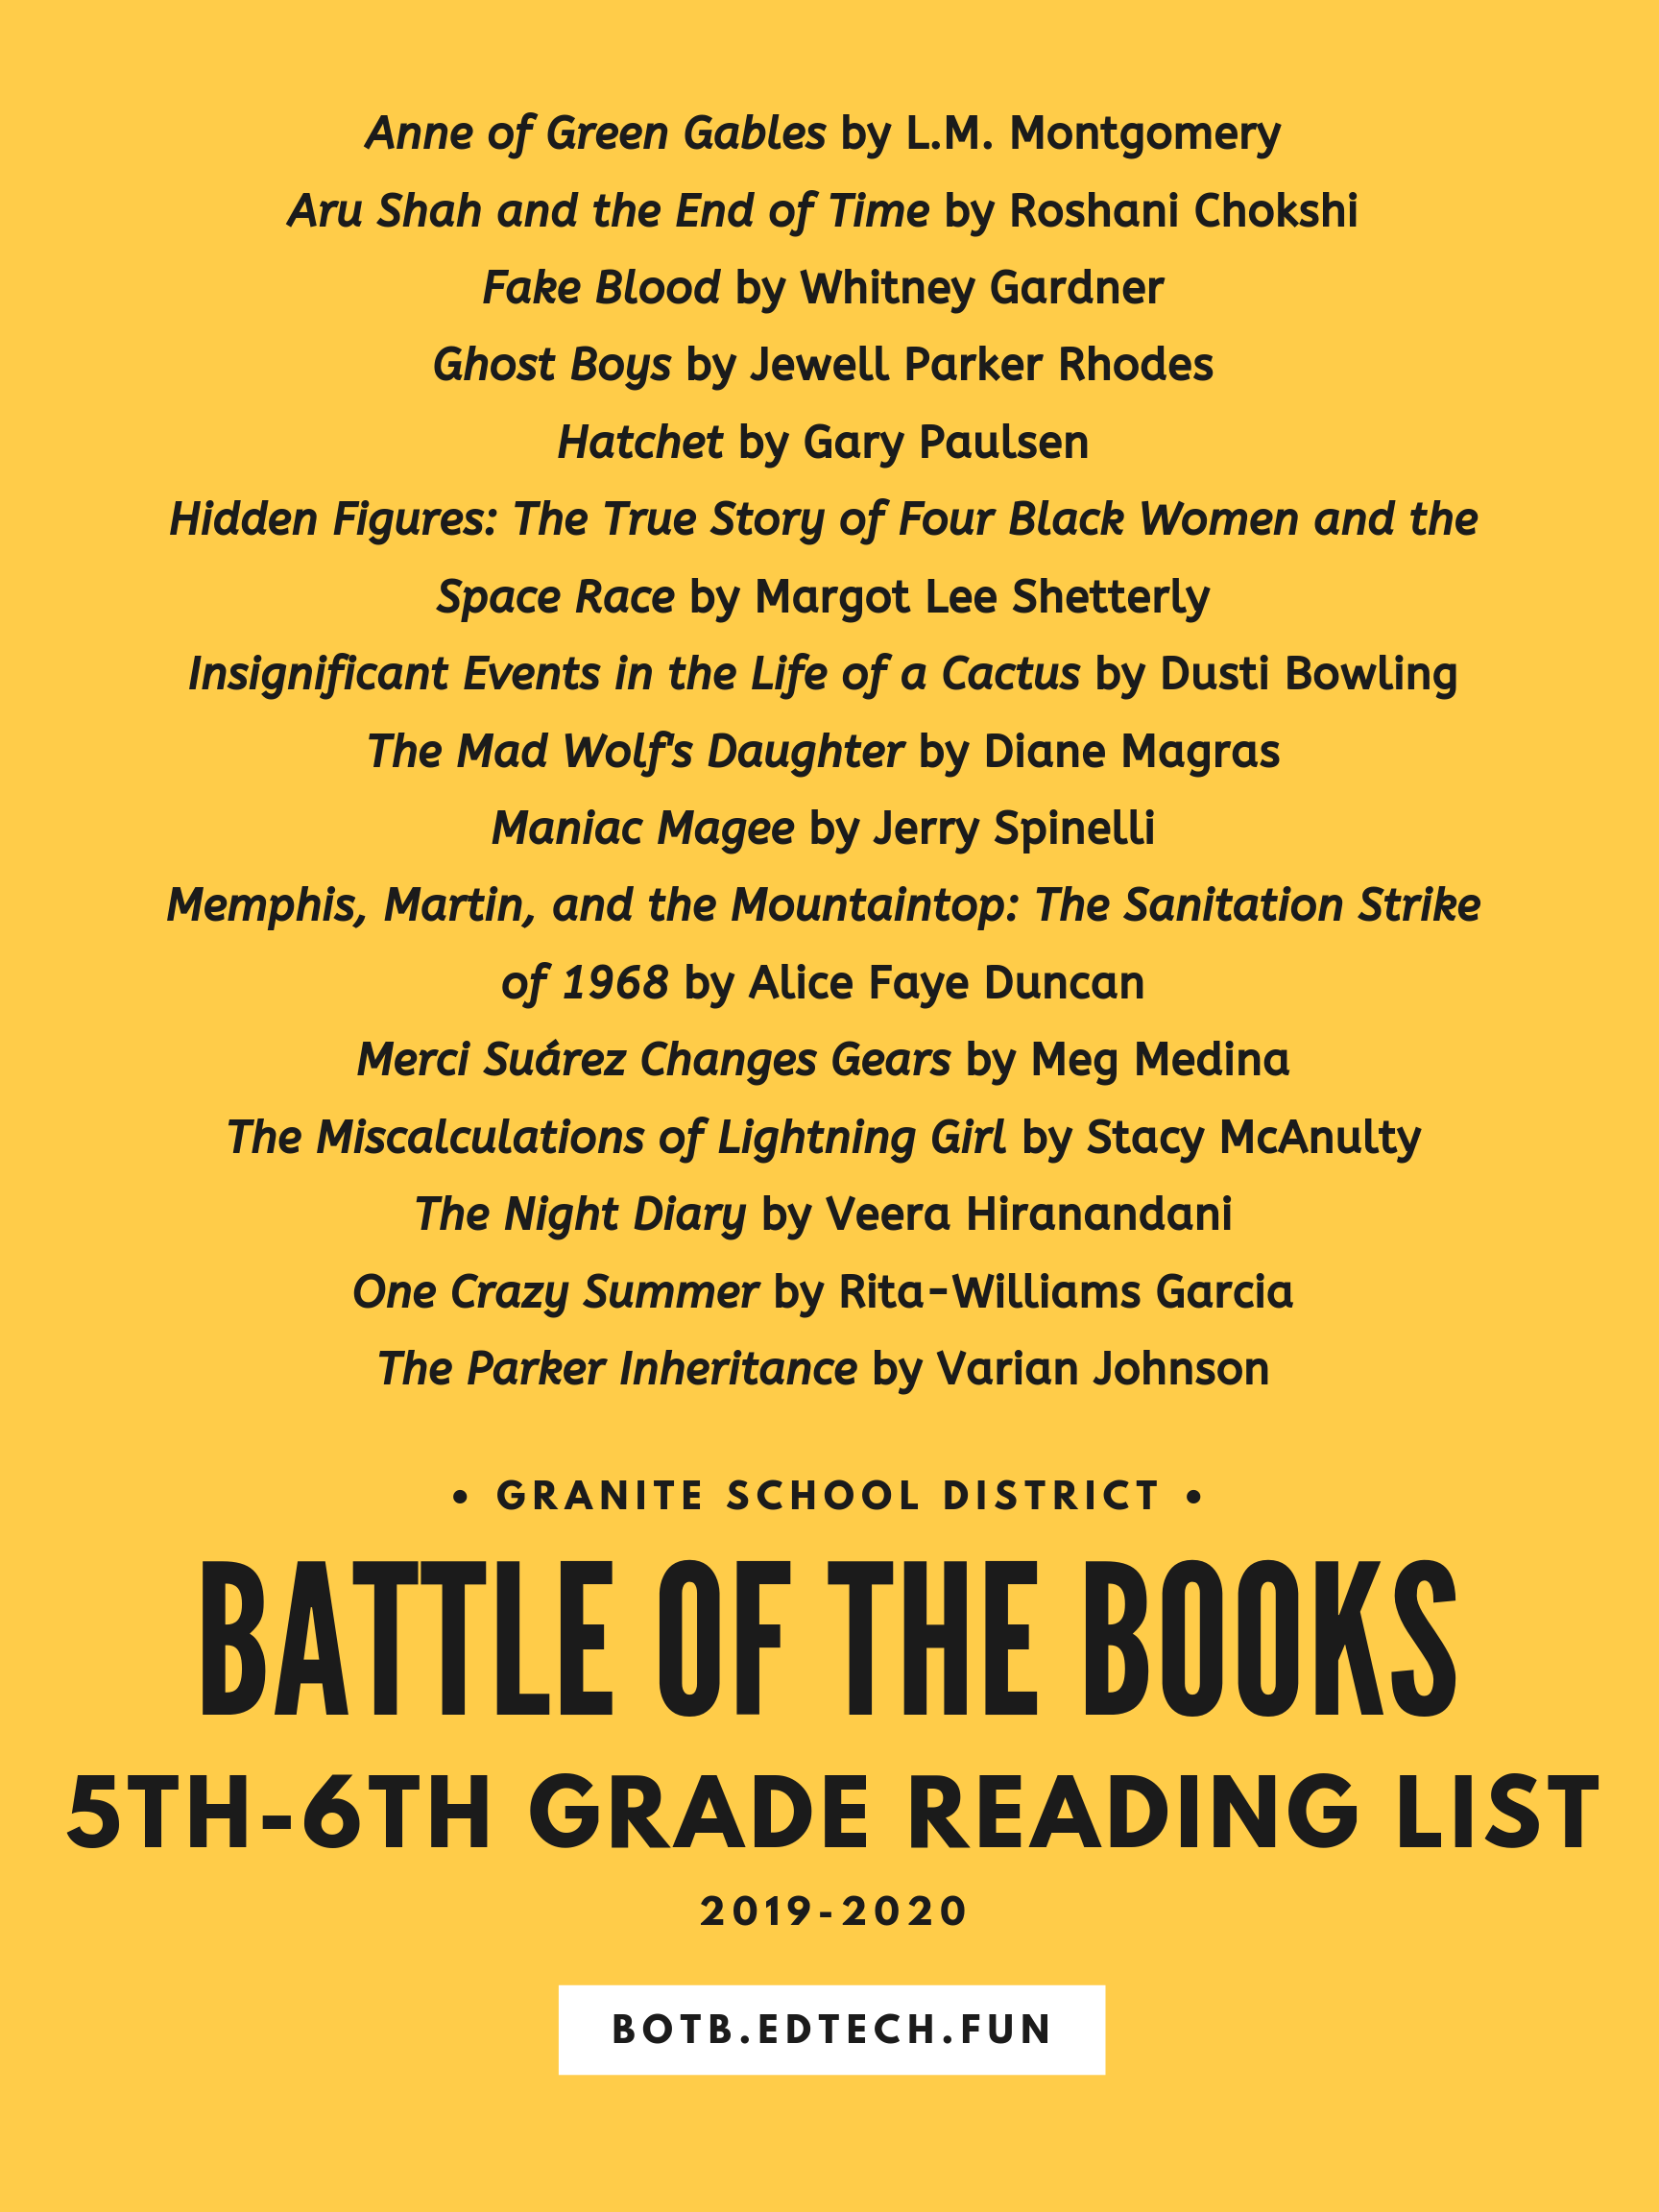 List Of 2020 Books.Granite Battle Of The Books 2019 2020 Reading Lists